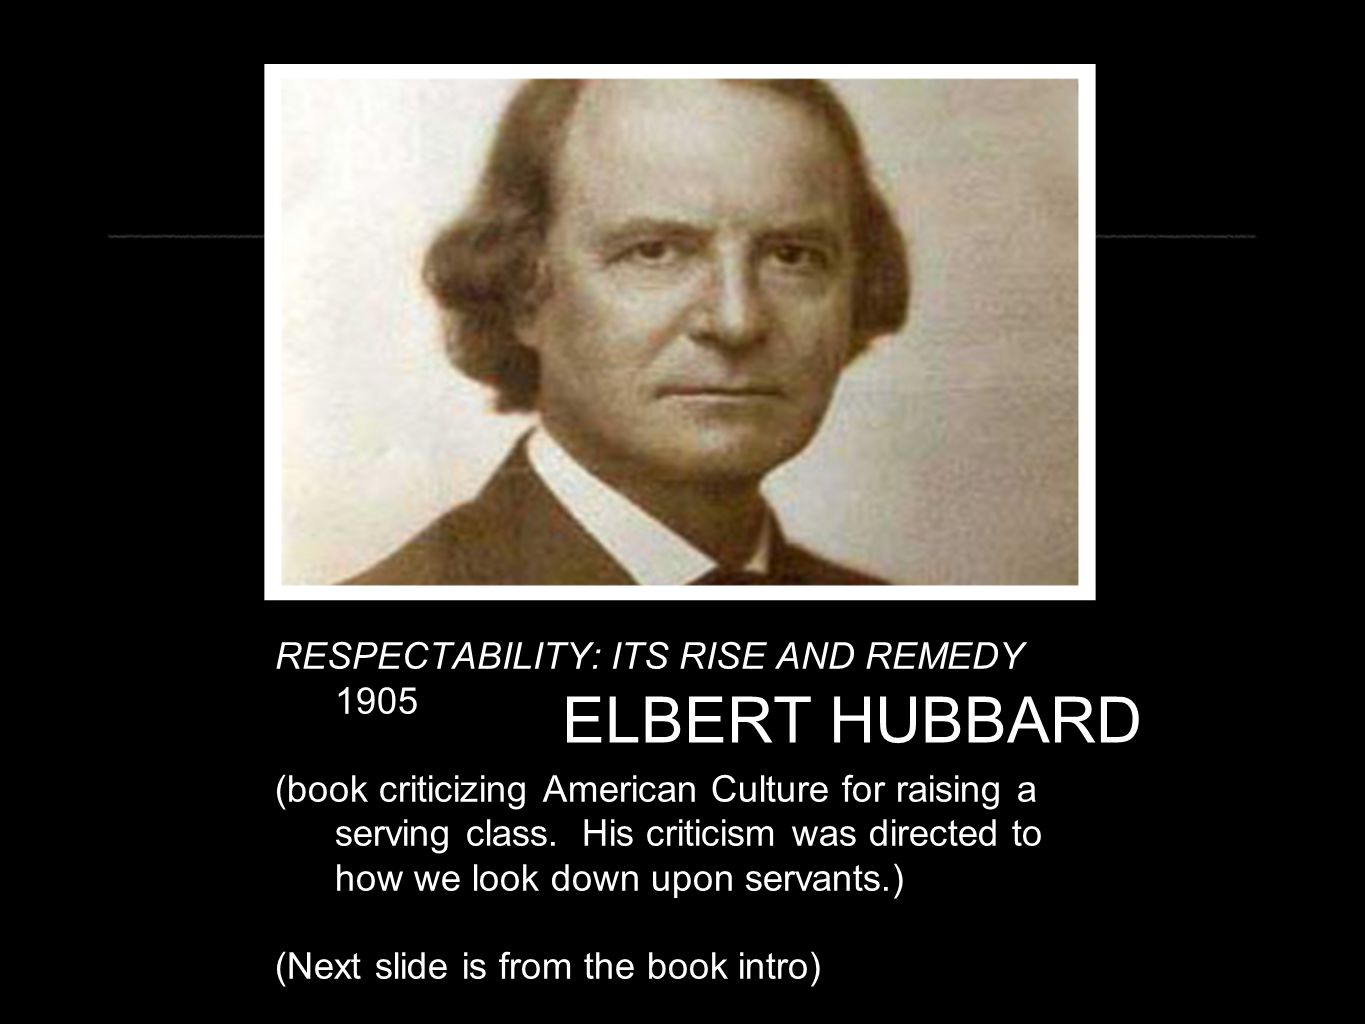 ELBERT HUBBARD RESPECTABILITY: ITS RISE AND REMEDY 1905 (book criticizing American Culture for raising a serving class. His criticism was directed to